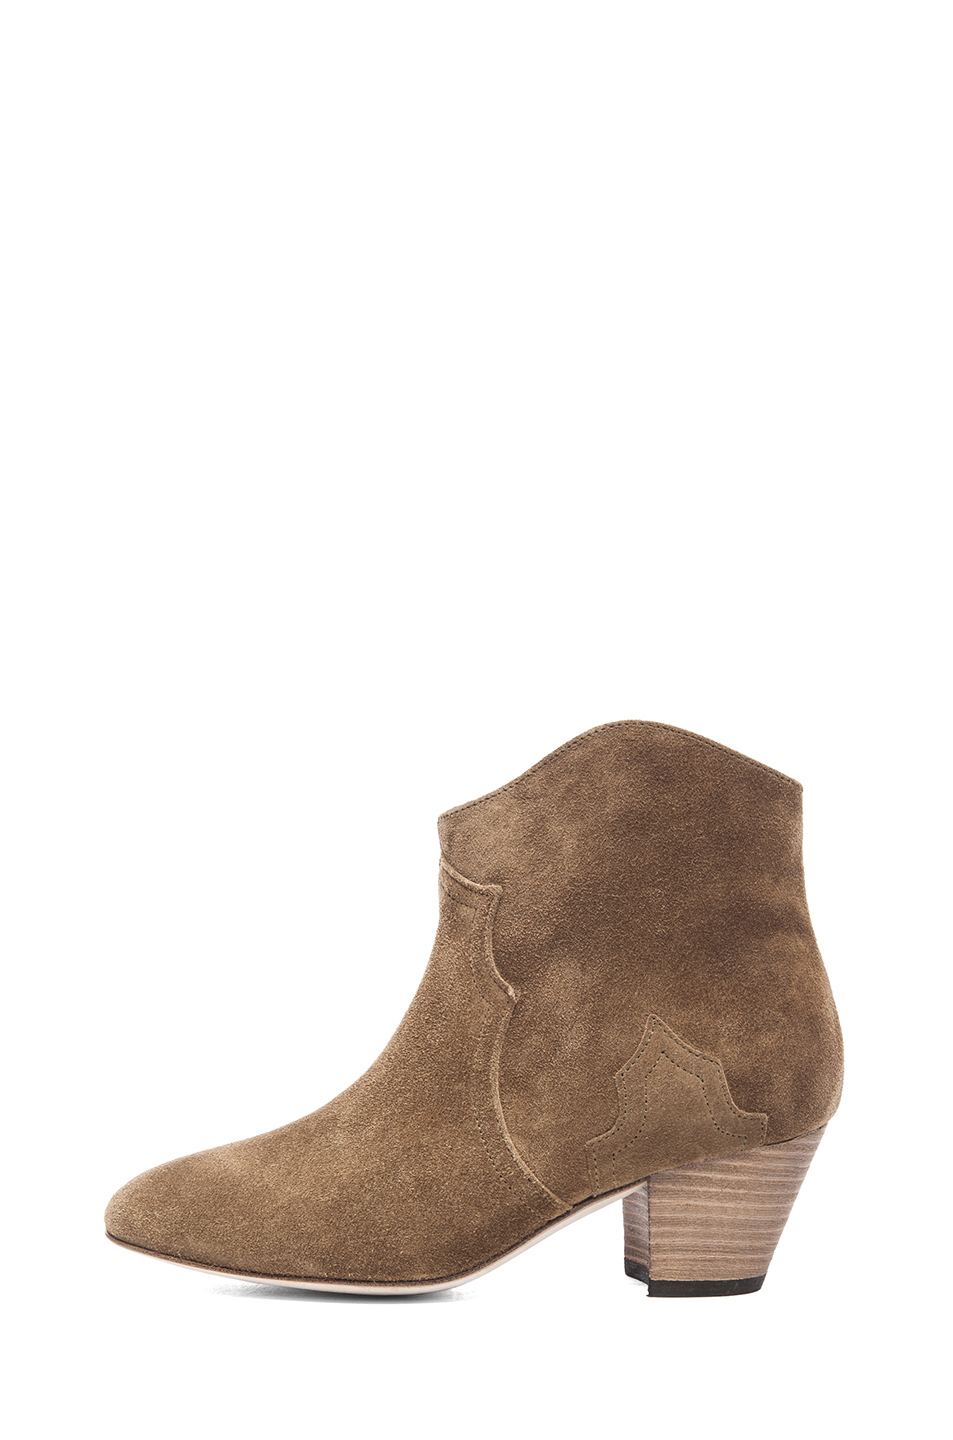 Isabel Marant|Dicker Calfskin Velvet Booties in Brown